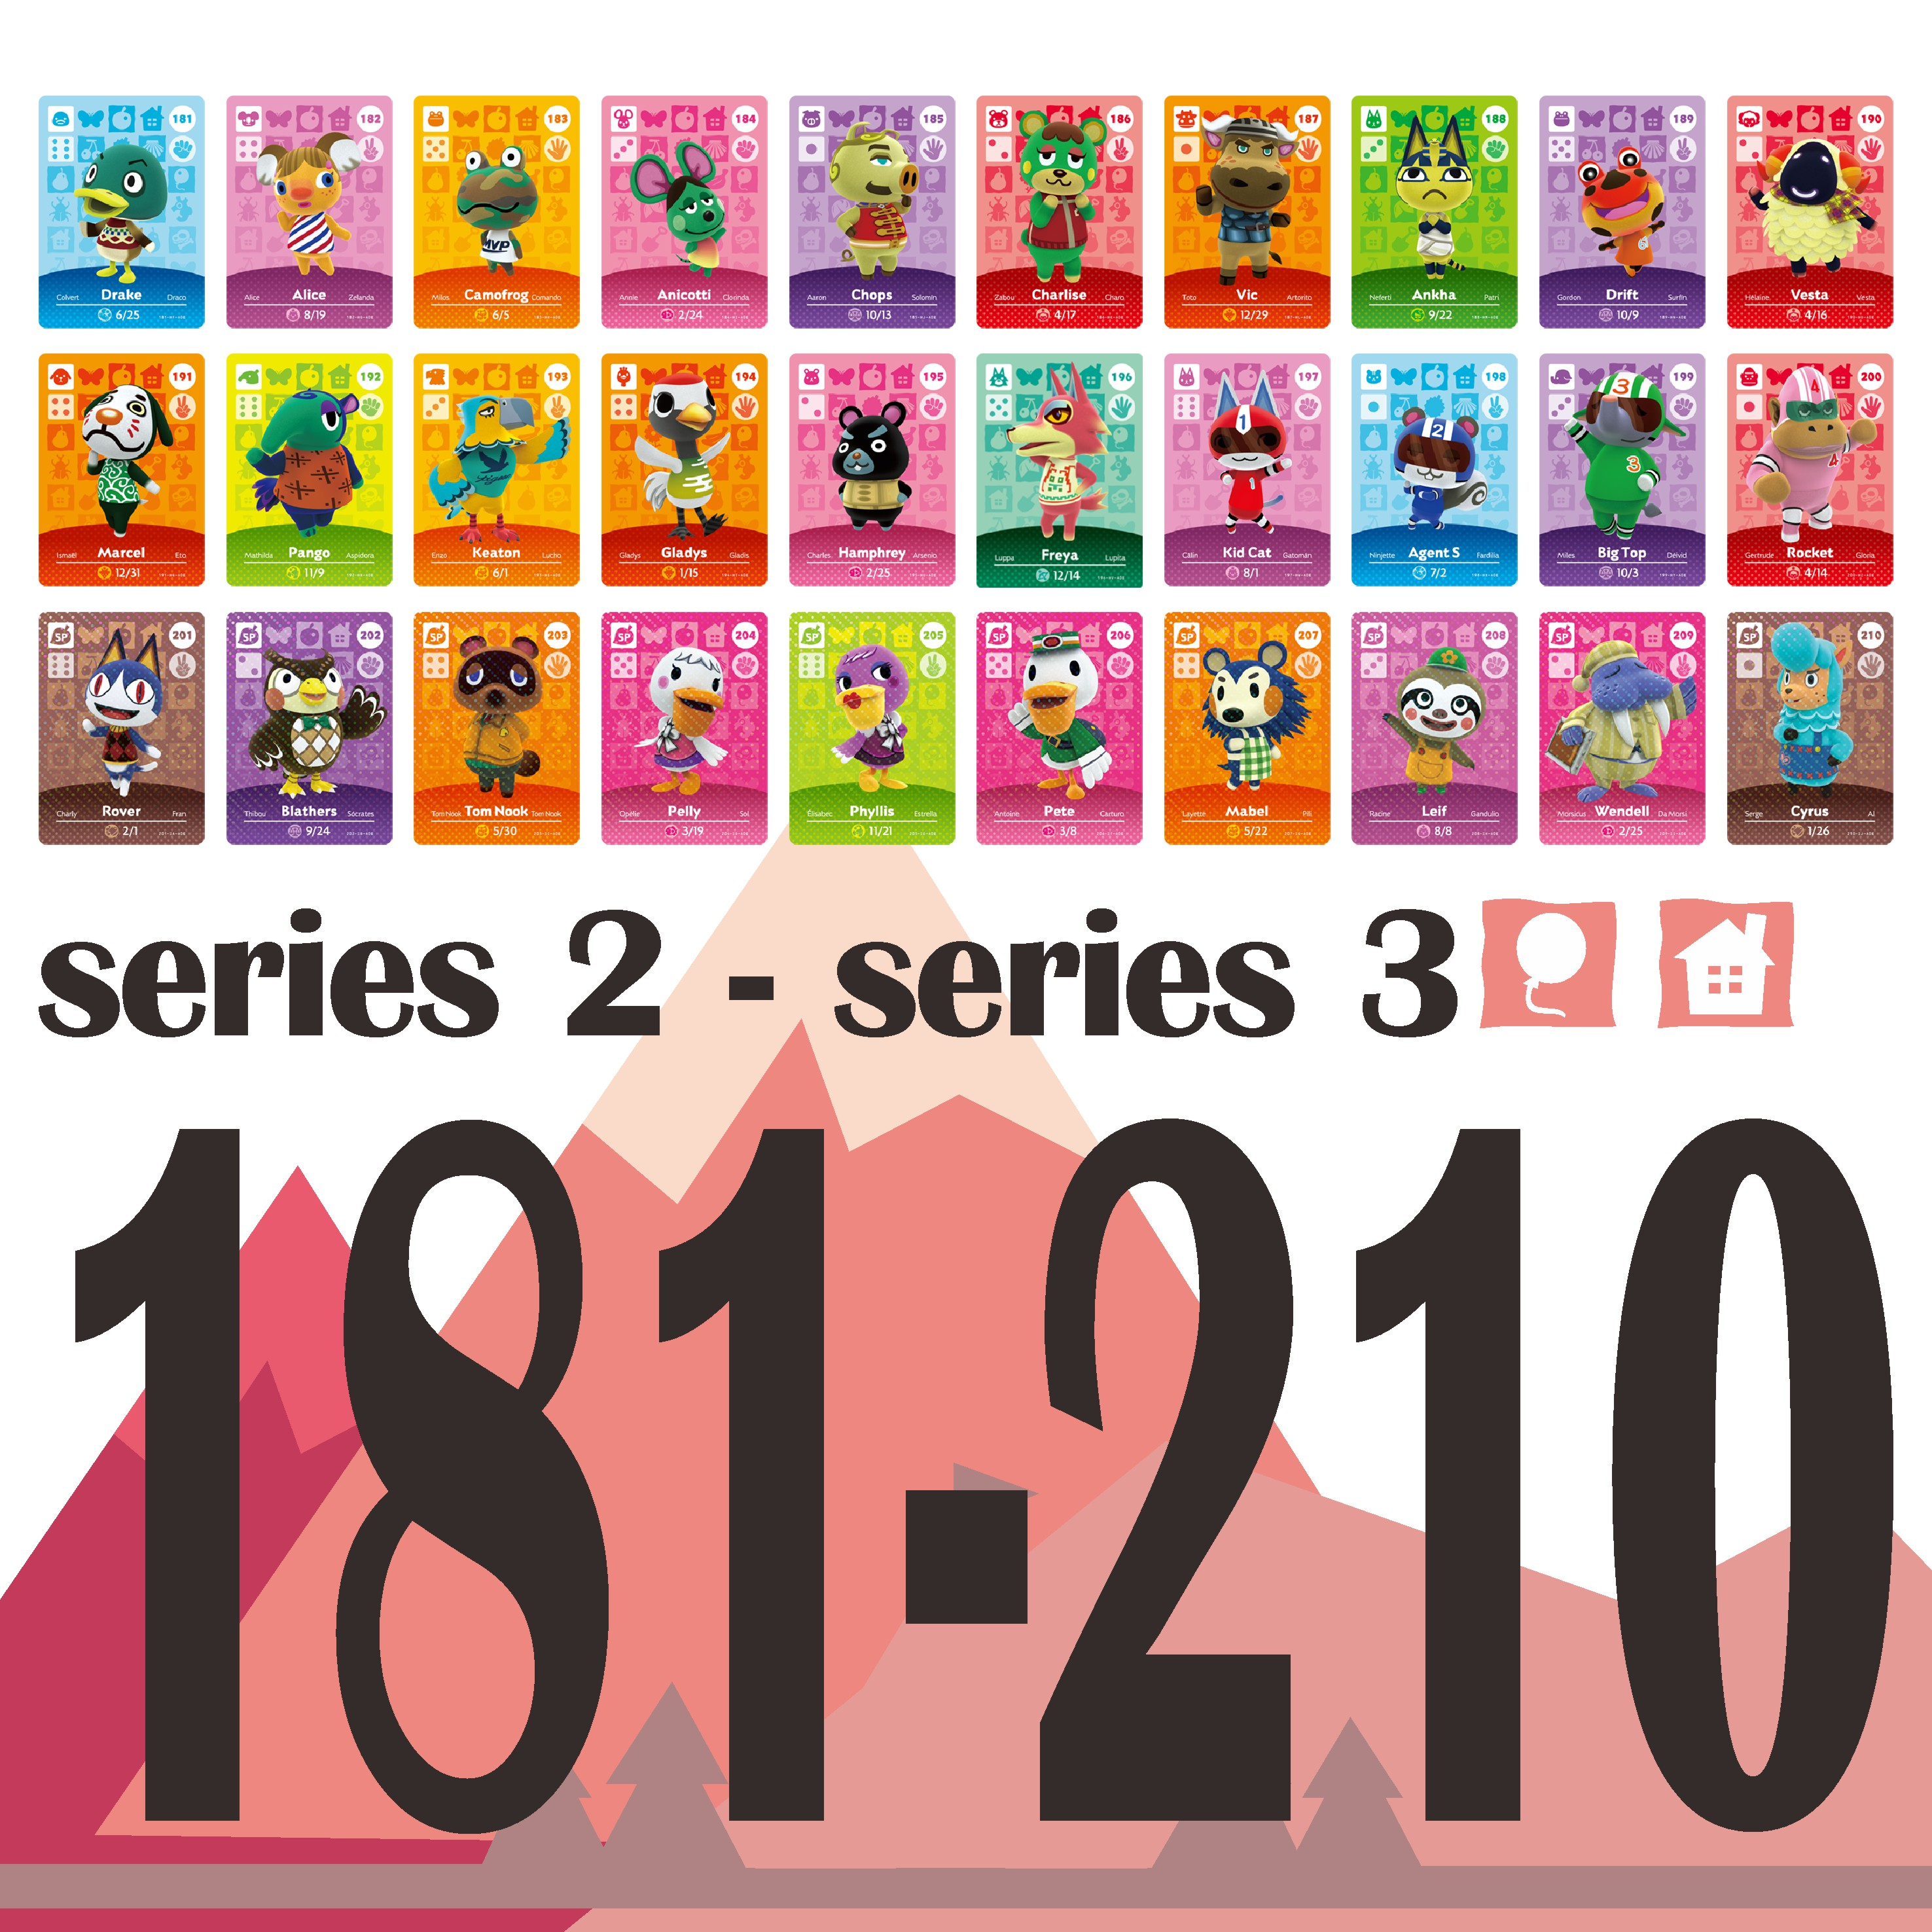 Animal Crossing Card Amiibo Card Work For NS Games Welcome Stickers New Horizons Amibo Switch NFC Series 2&Series 3 (181 To 210)